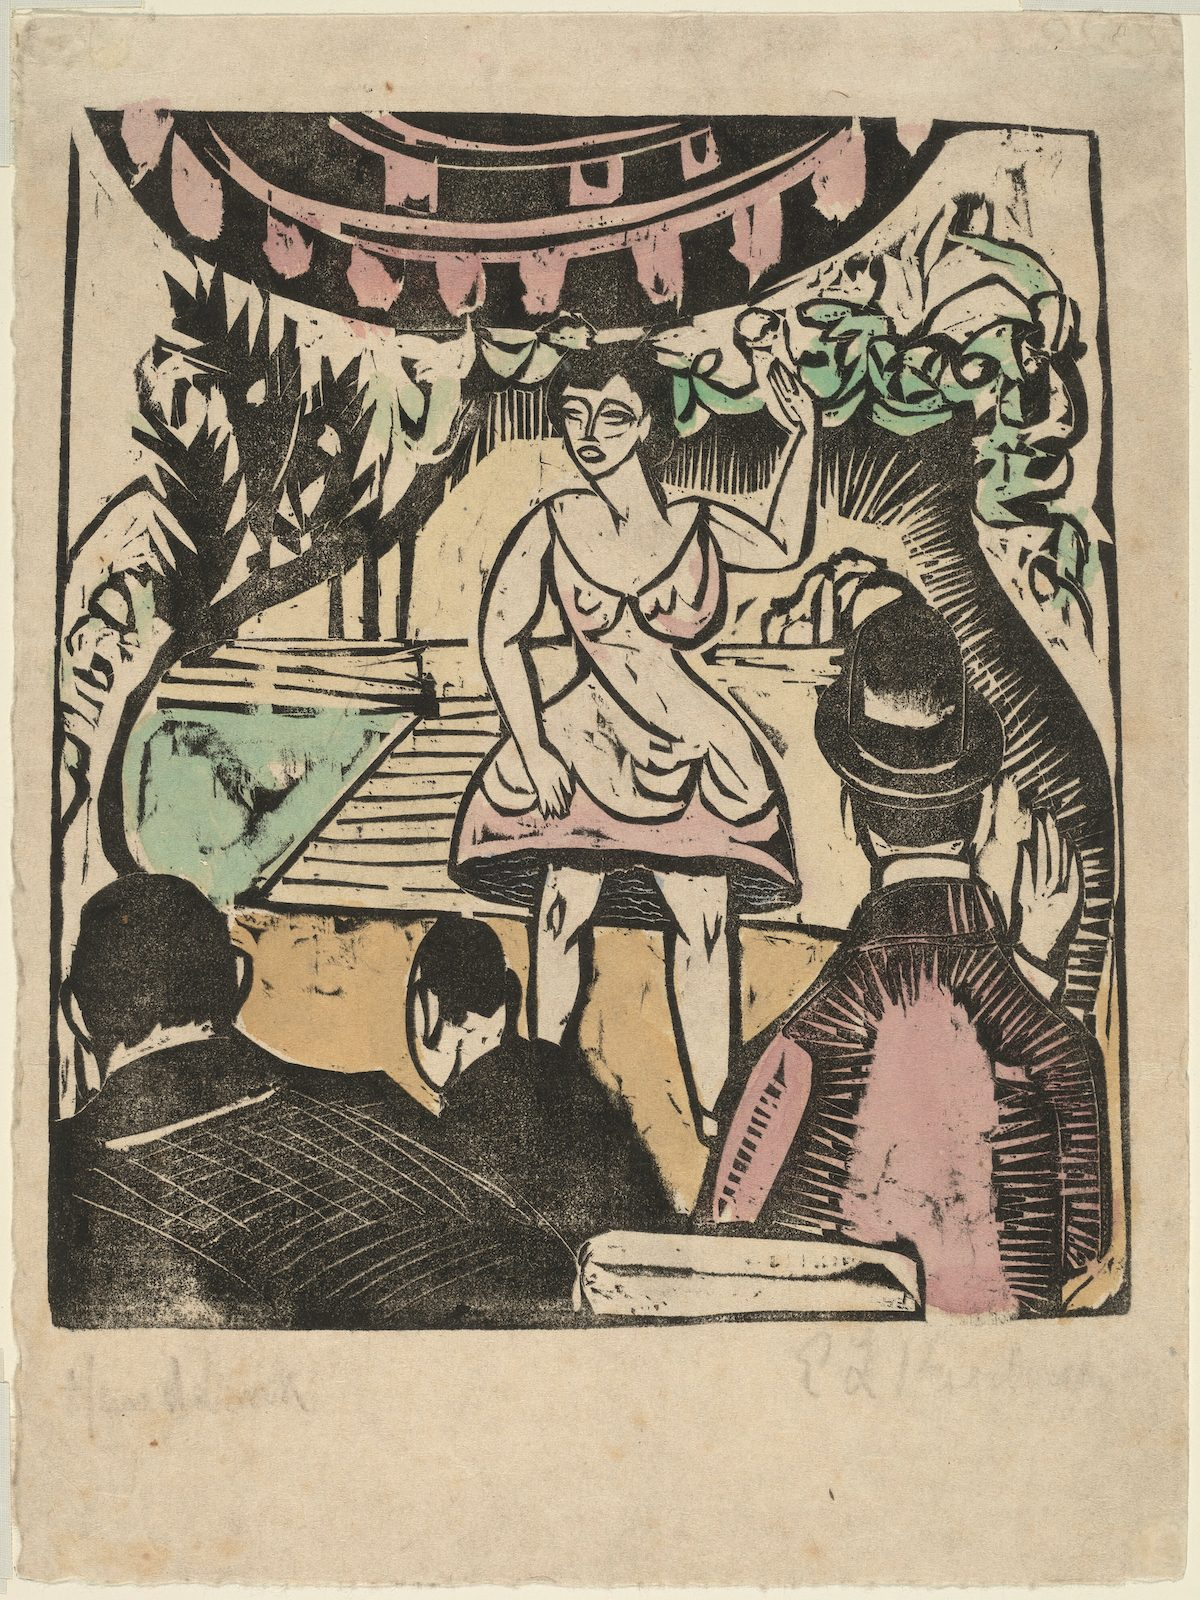 Little Variety Act with Singer by Ernst Ludwig Kirchner - c. 1909